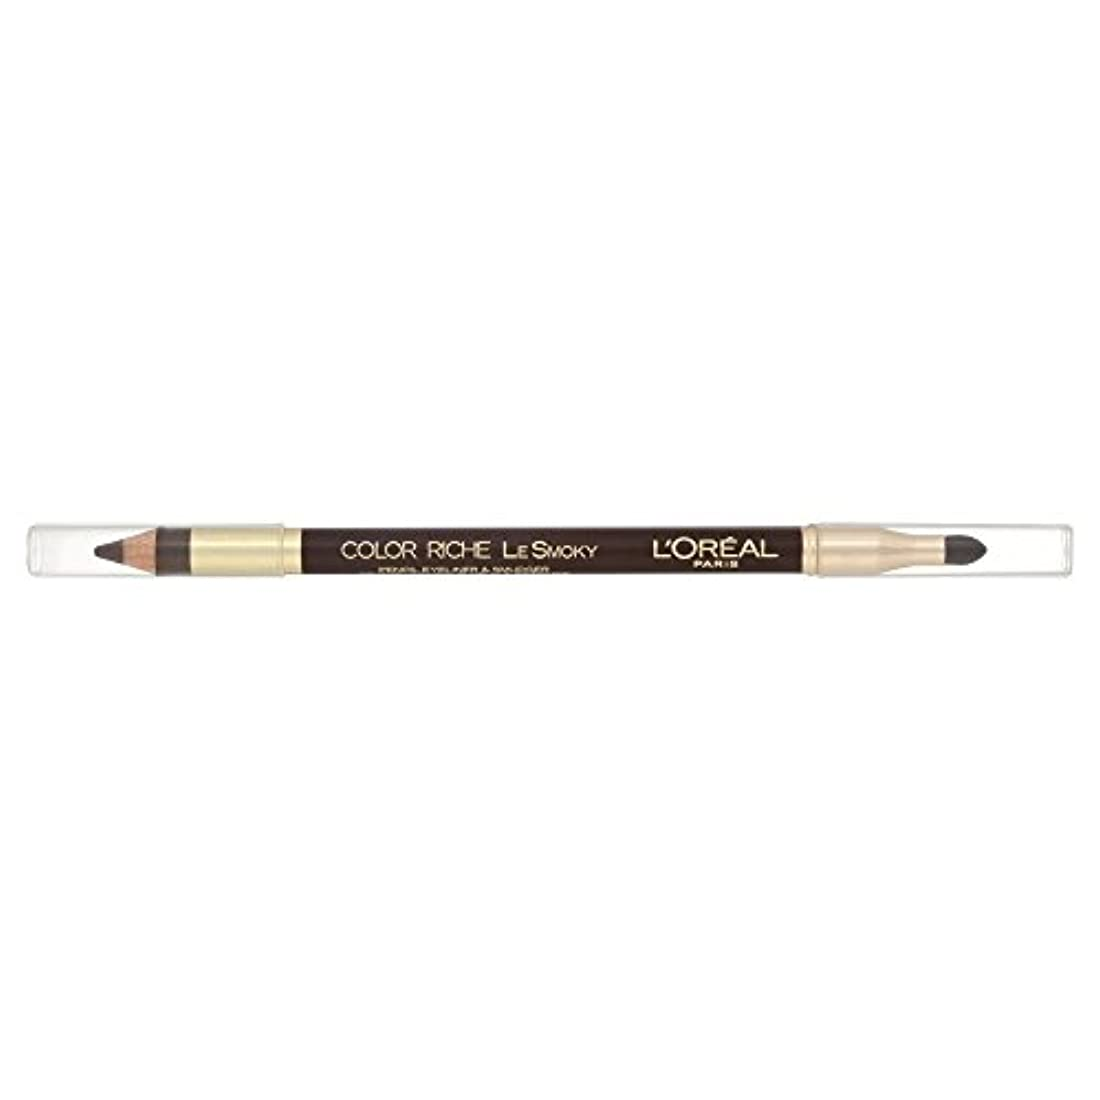 静かに種申し立てられたLoreal Color Riche Le Smoky Eyeliner Brown Fusion 204